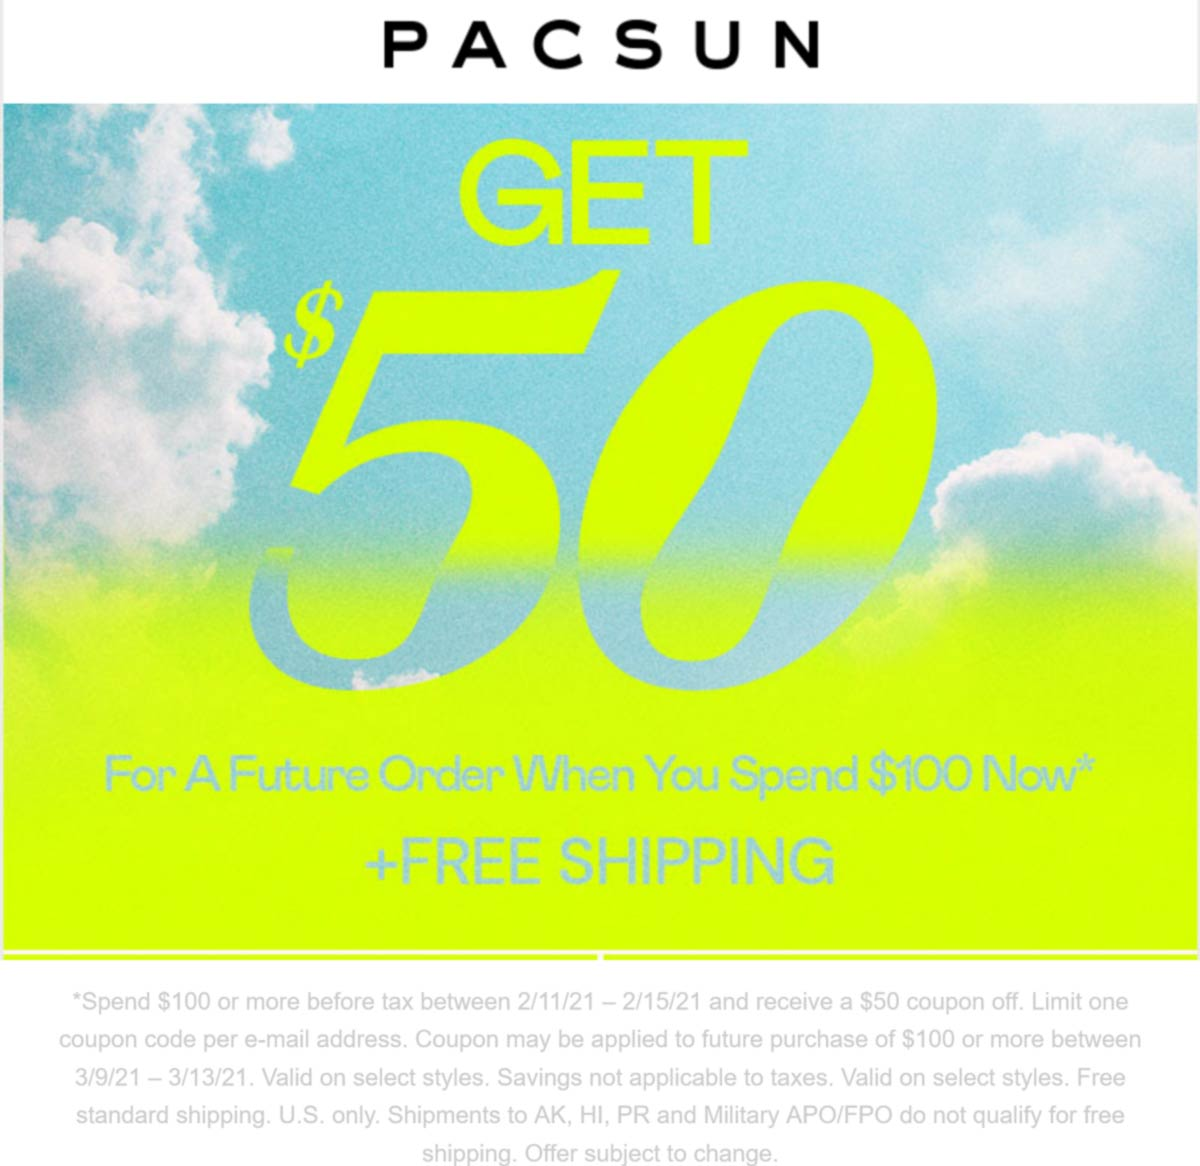 Pacsun stores Coupon  Future $50 off with $100 spent online at Pacsun #pacsun